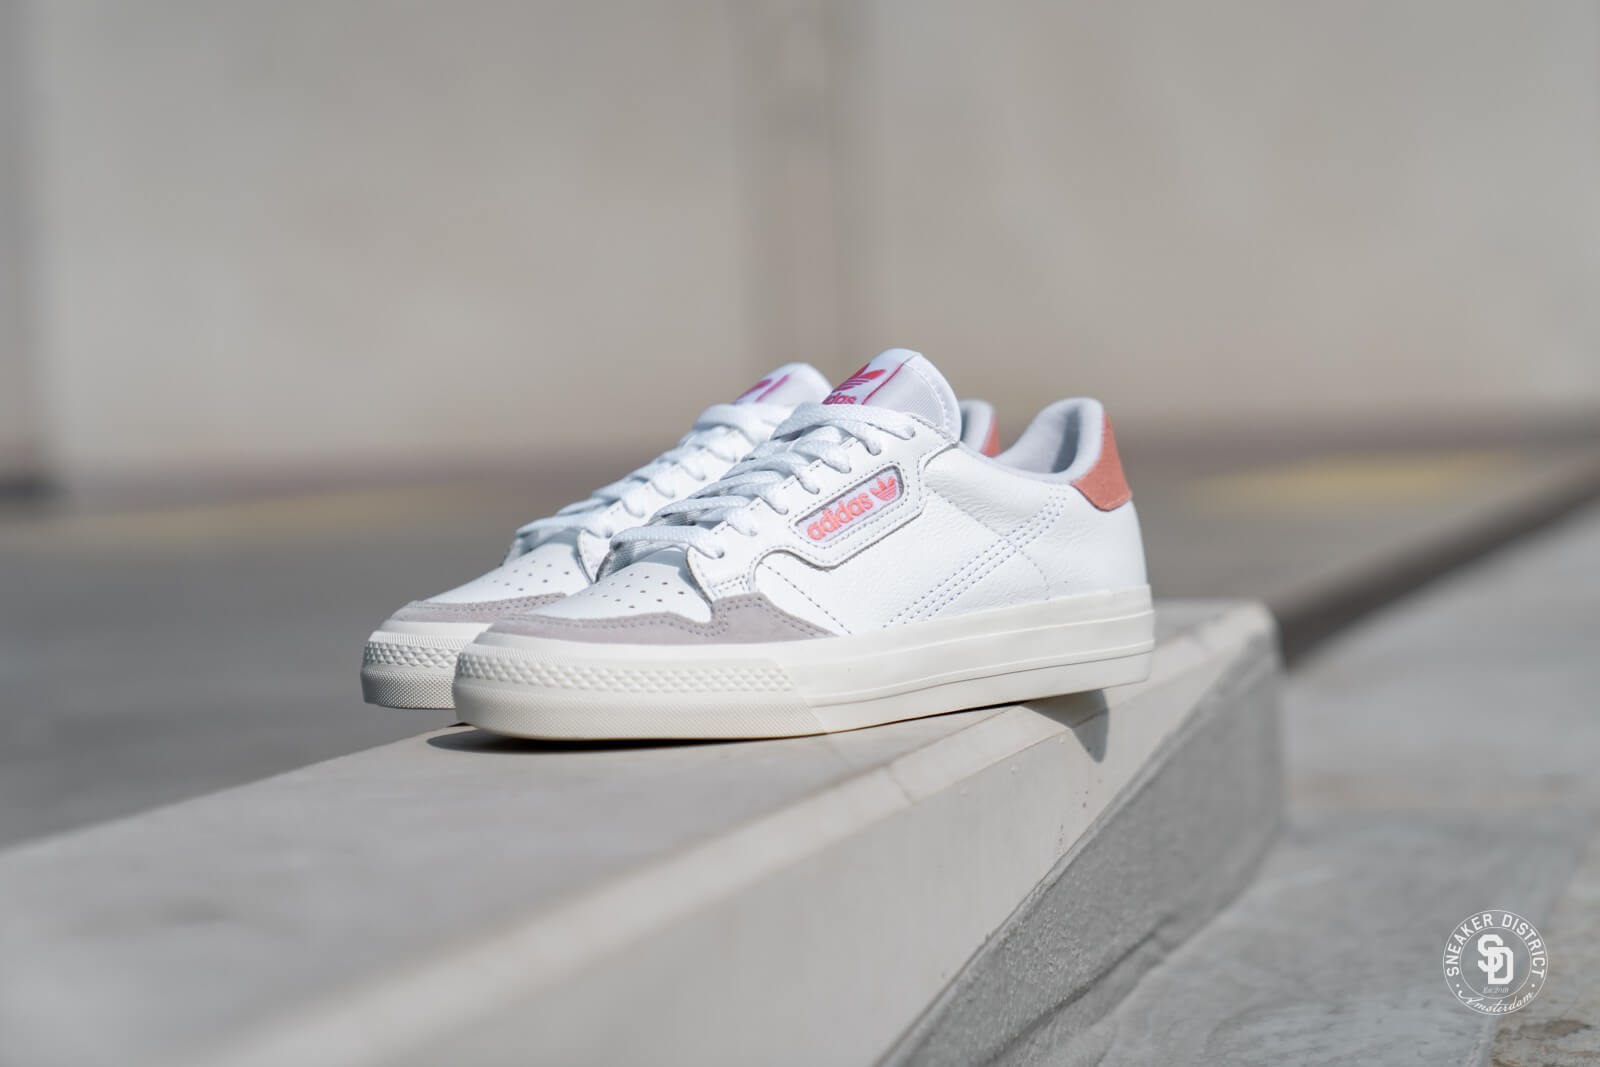 Adidas Continental Vulc Cloud White/Glow Pink - EF3535